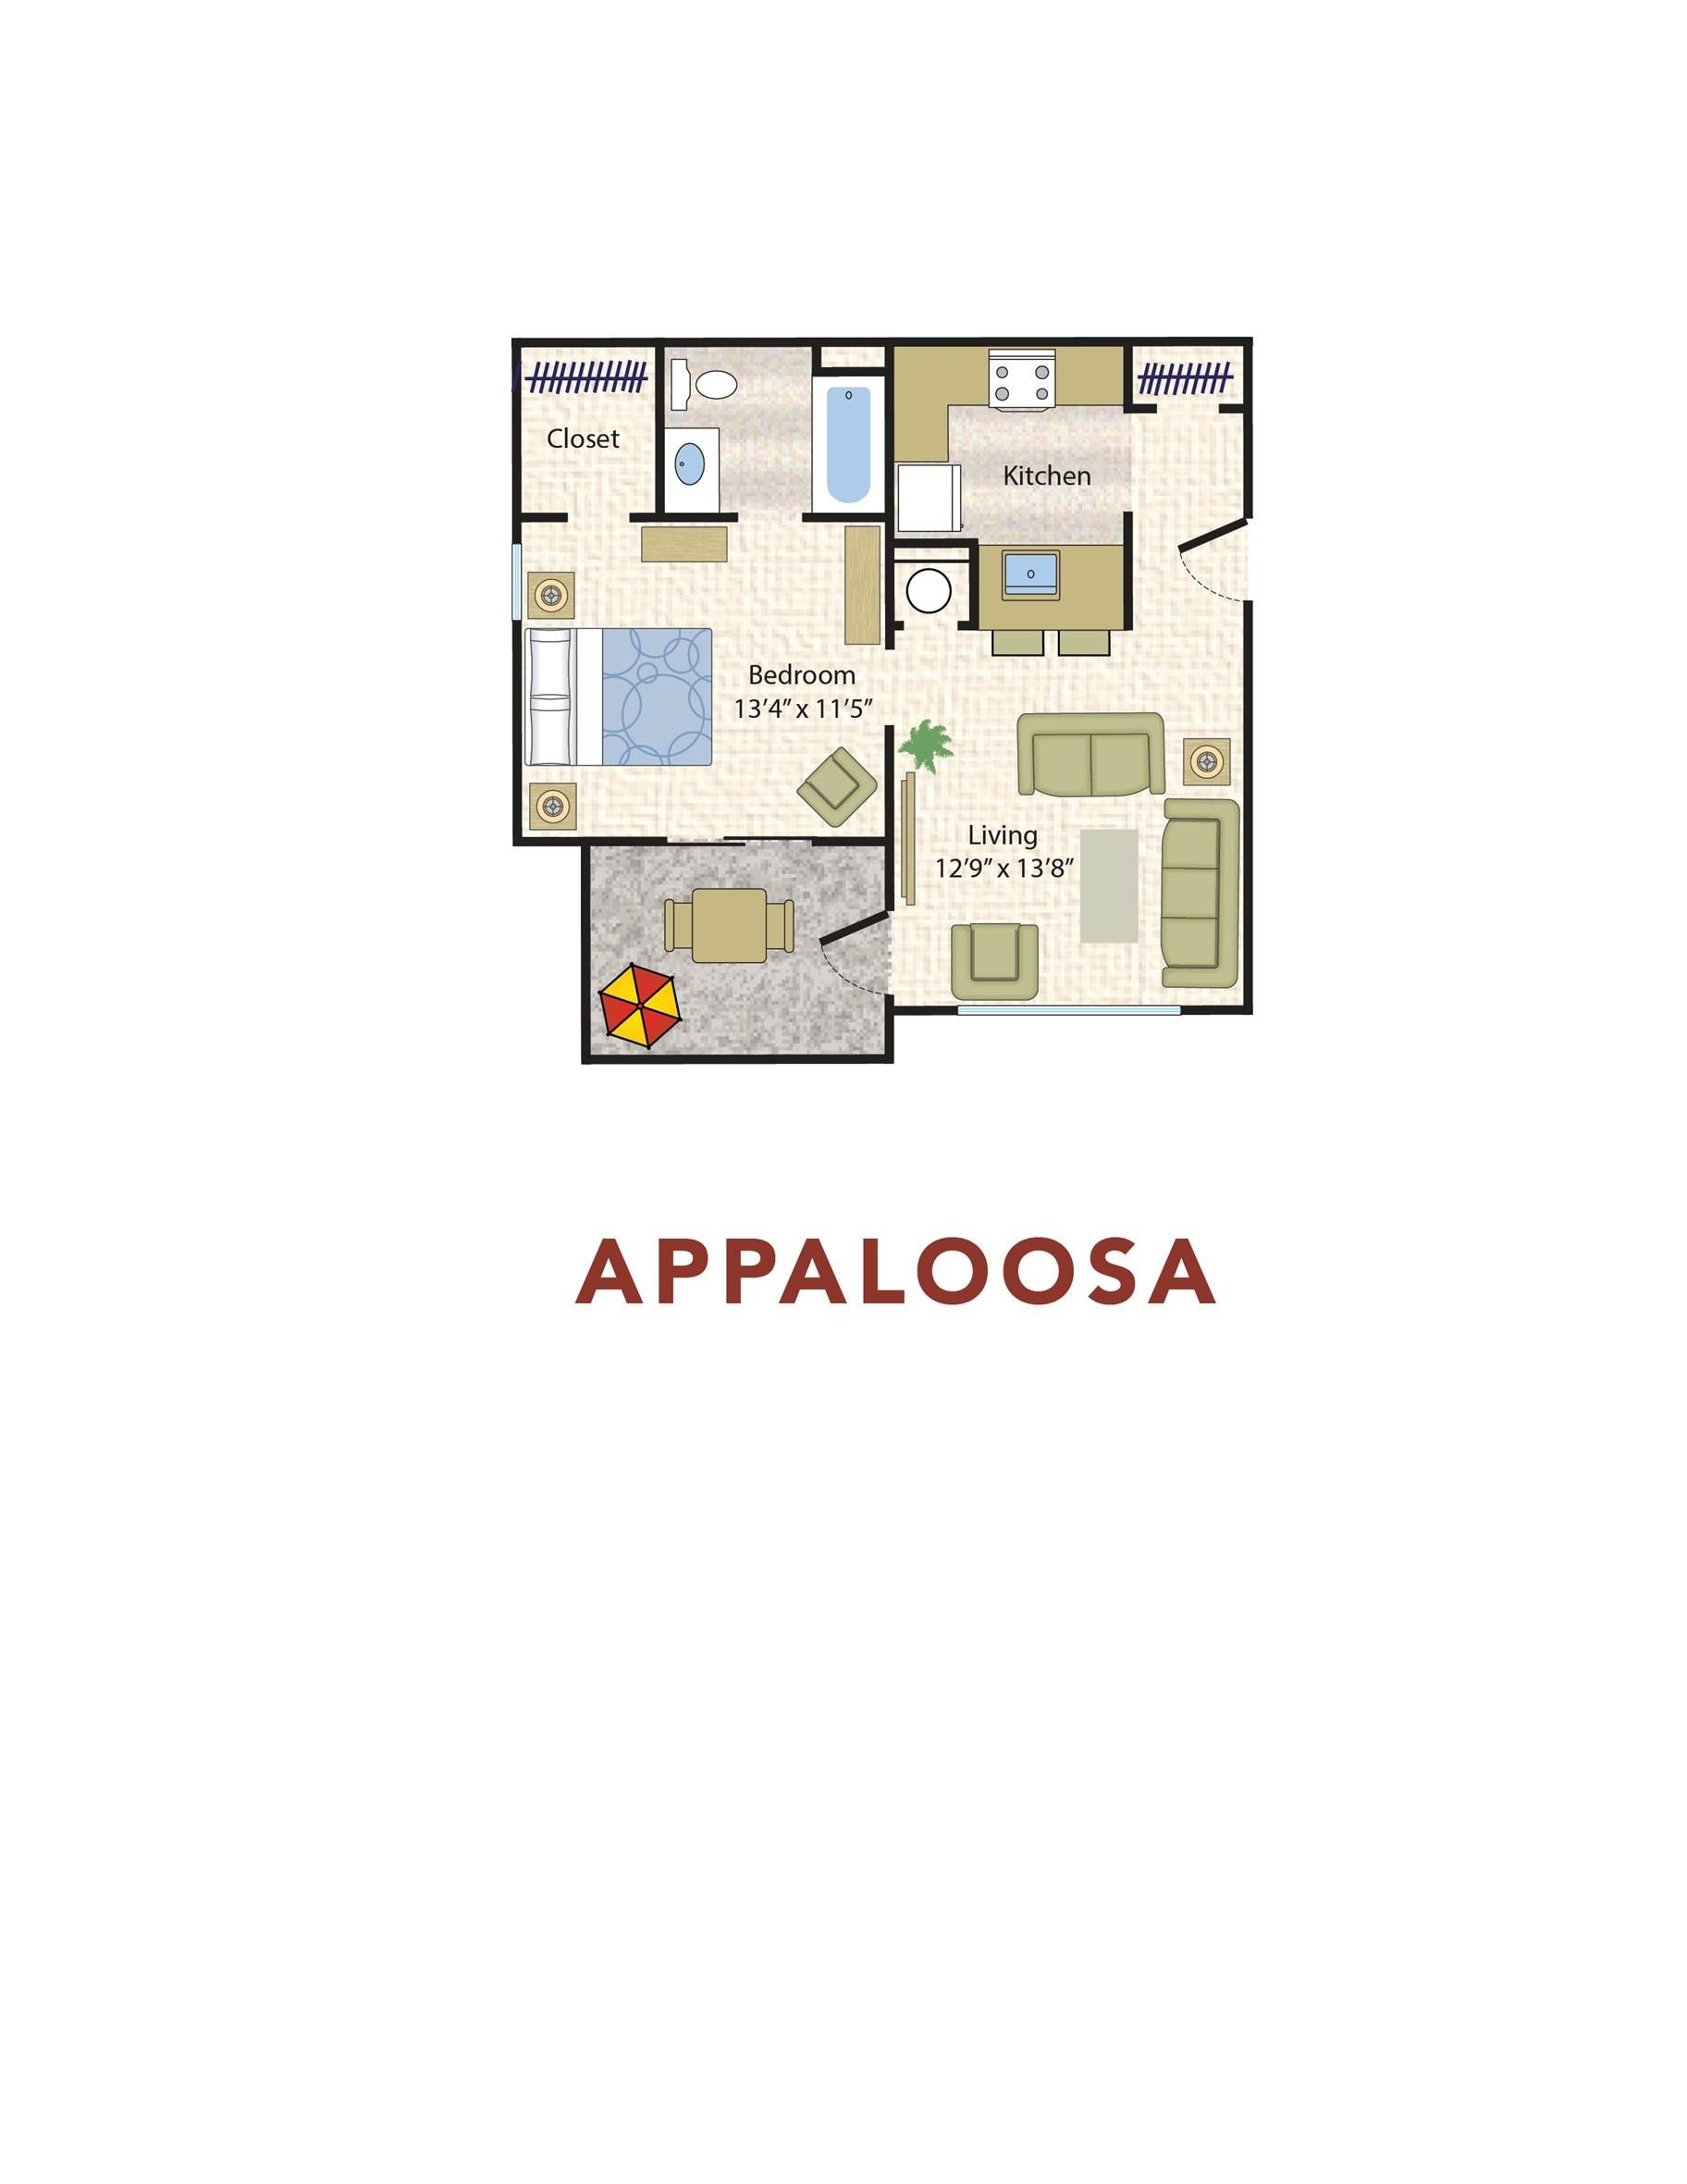 Appaloosa floorplan